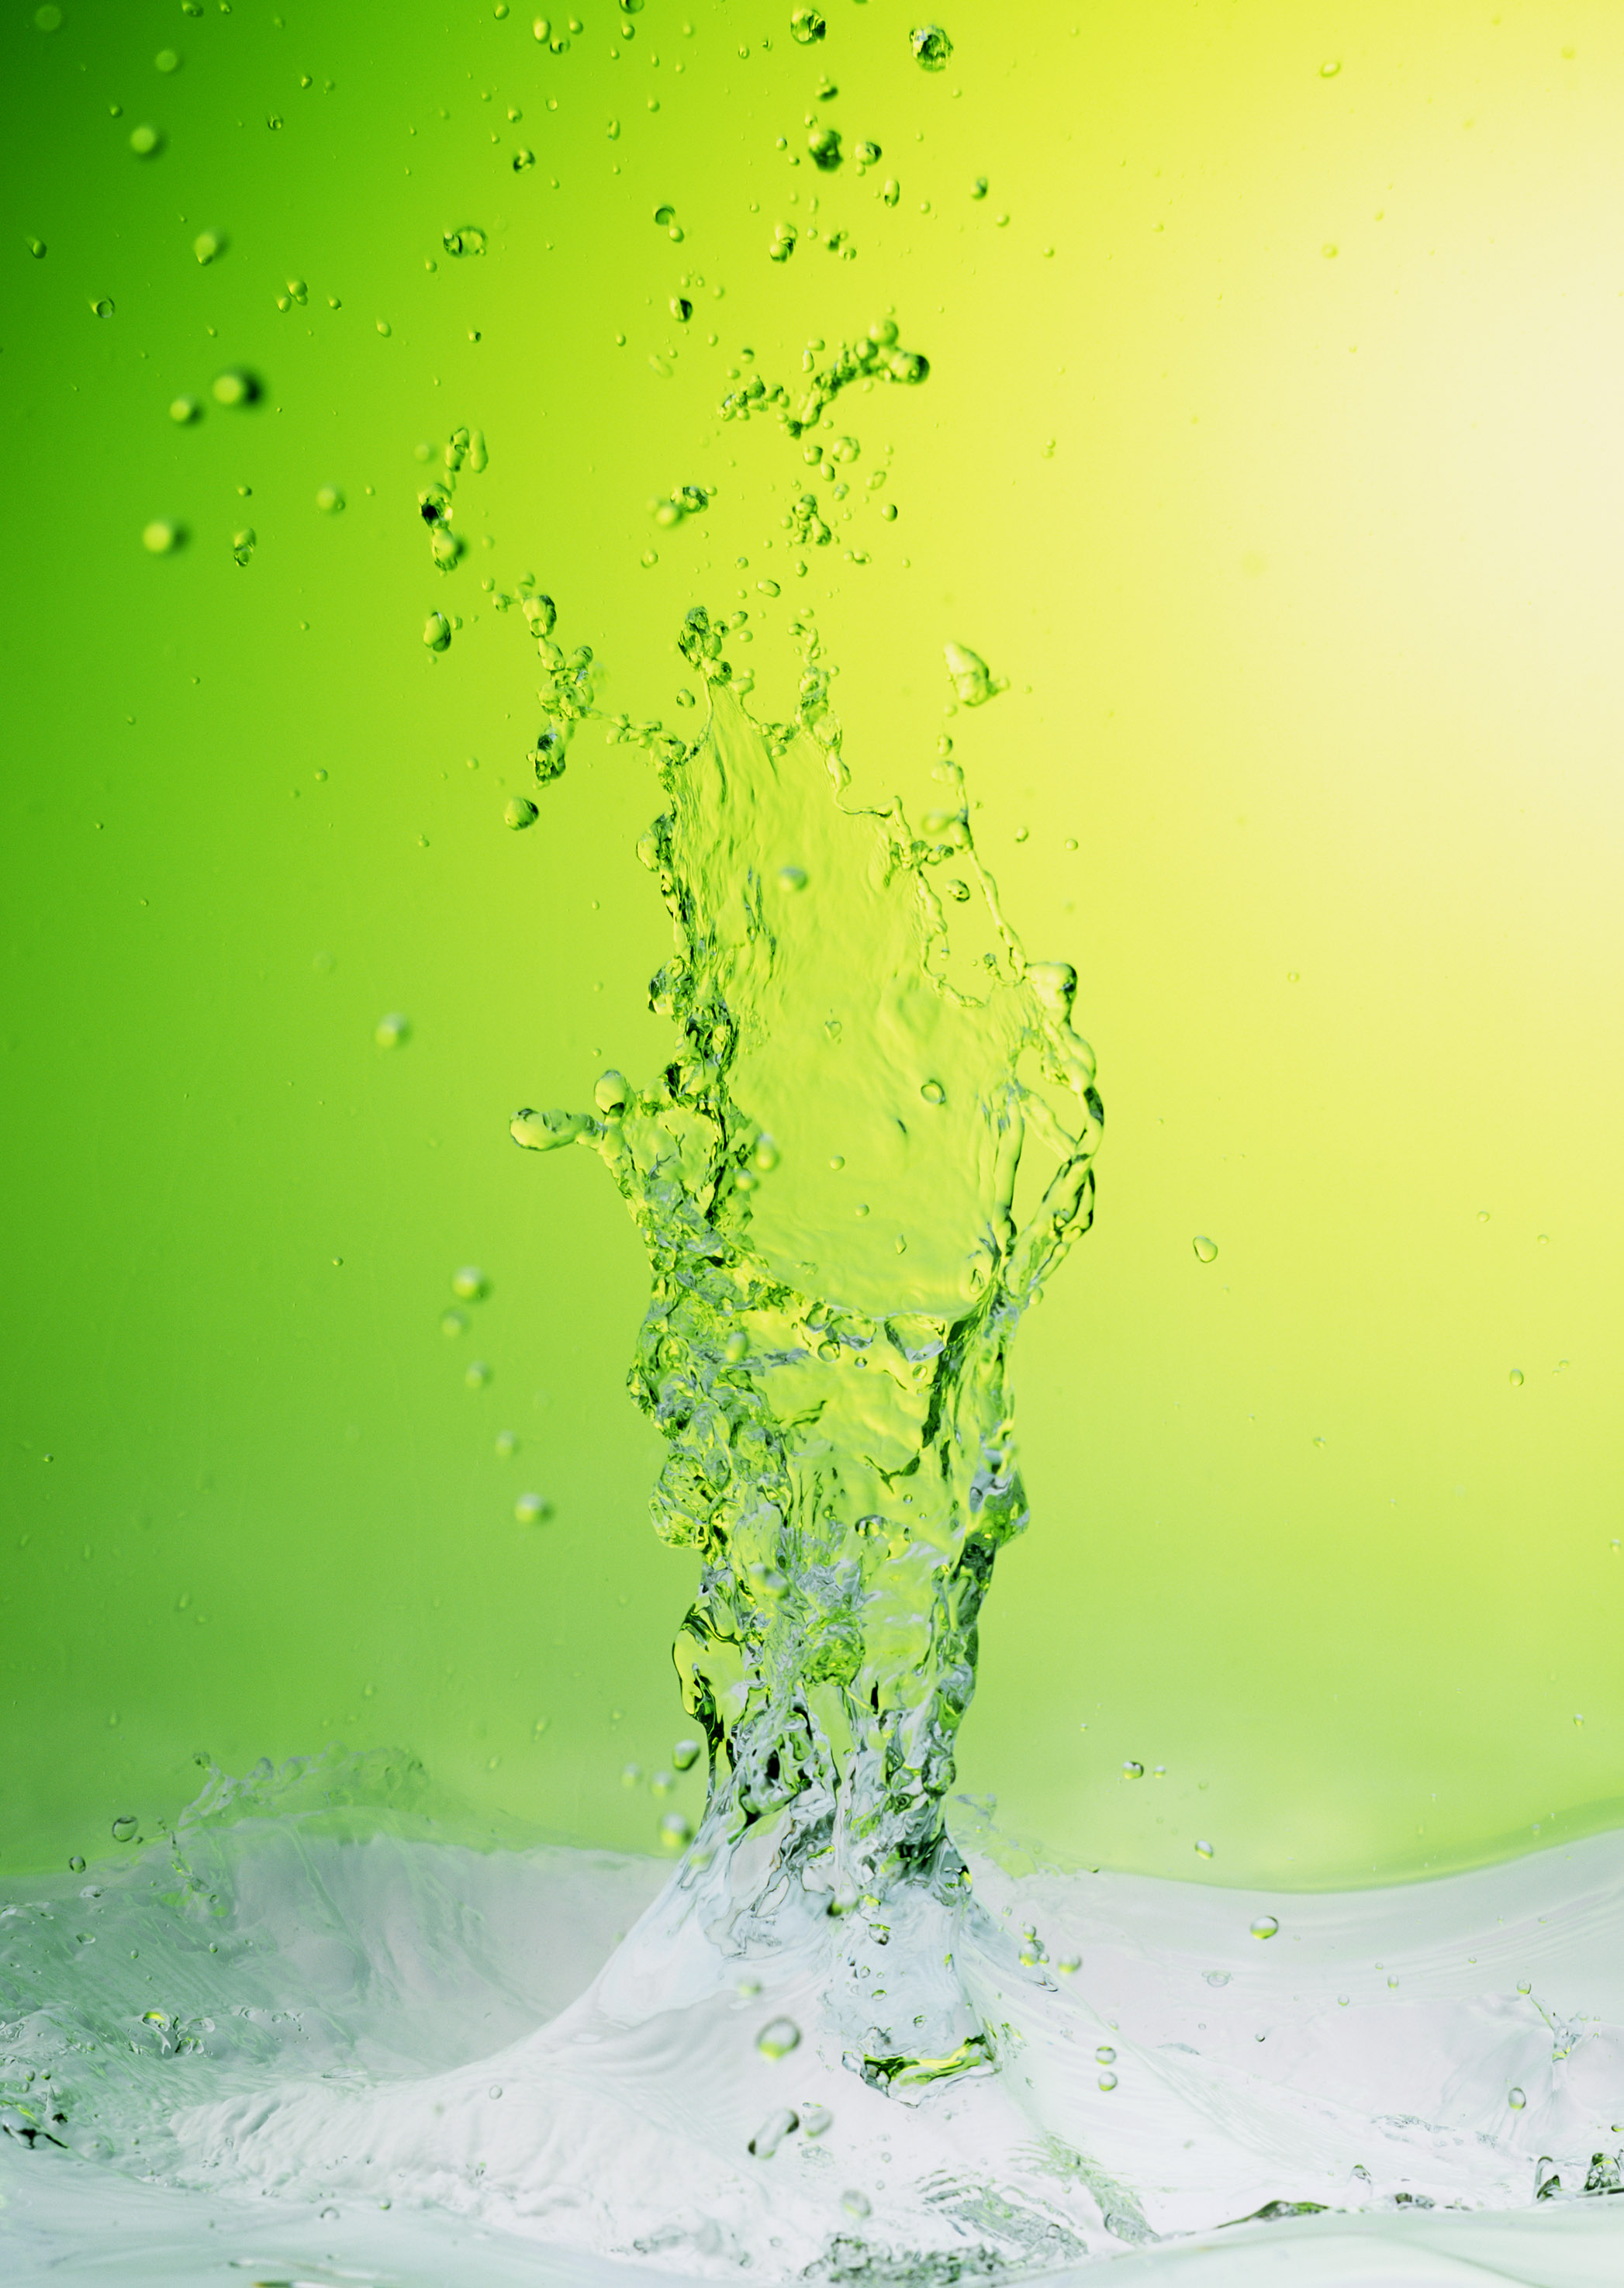 Free Colorful Green Green Abstract Wallpaper Downloads Wallpaper